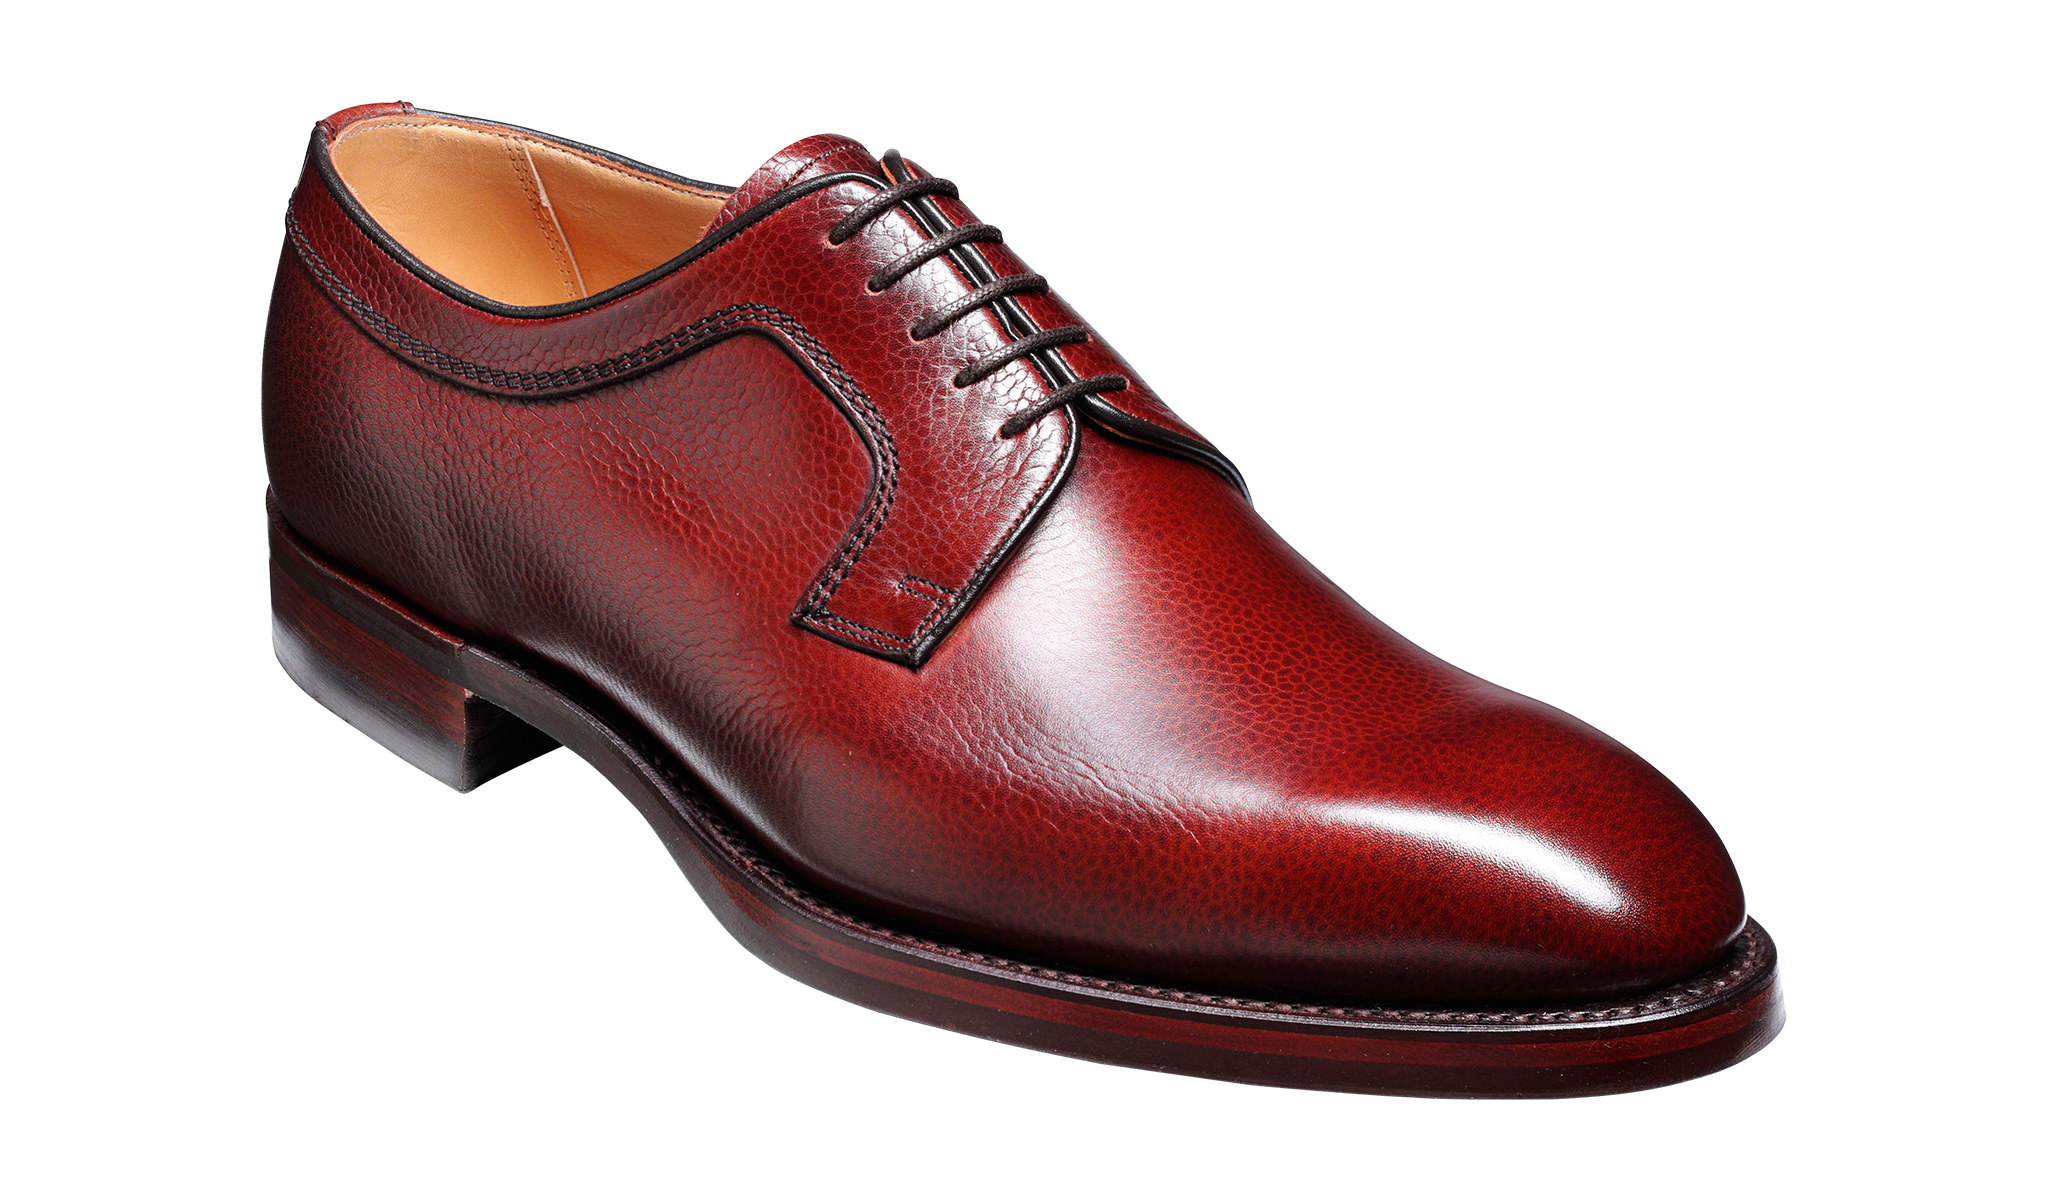 Skye - A brown derby shoes for men